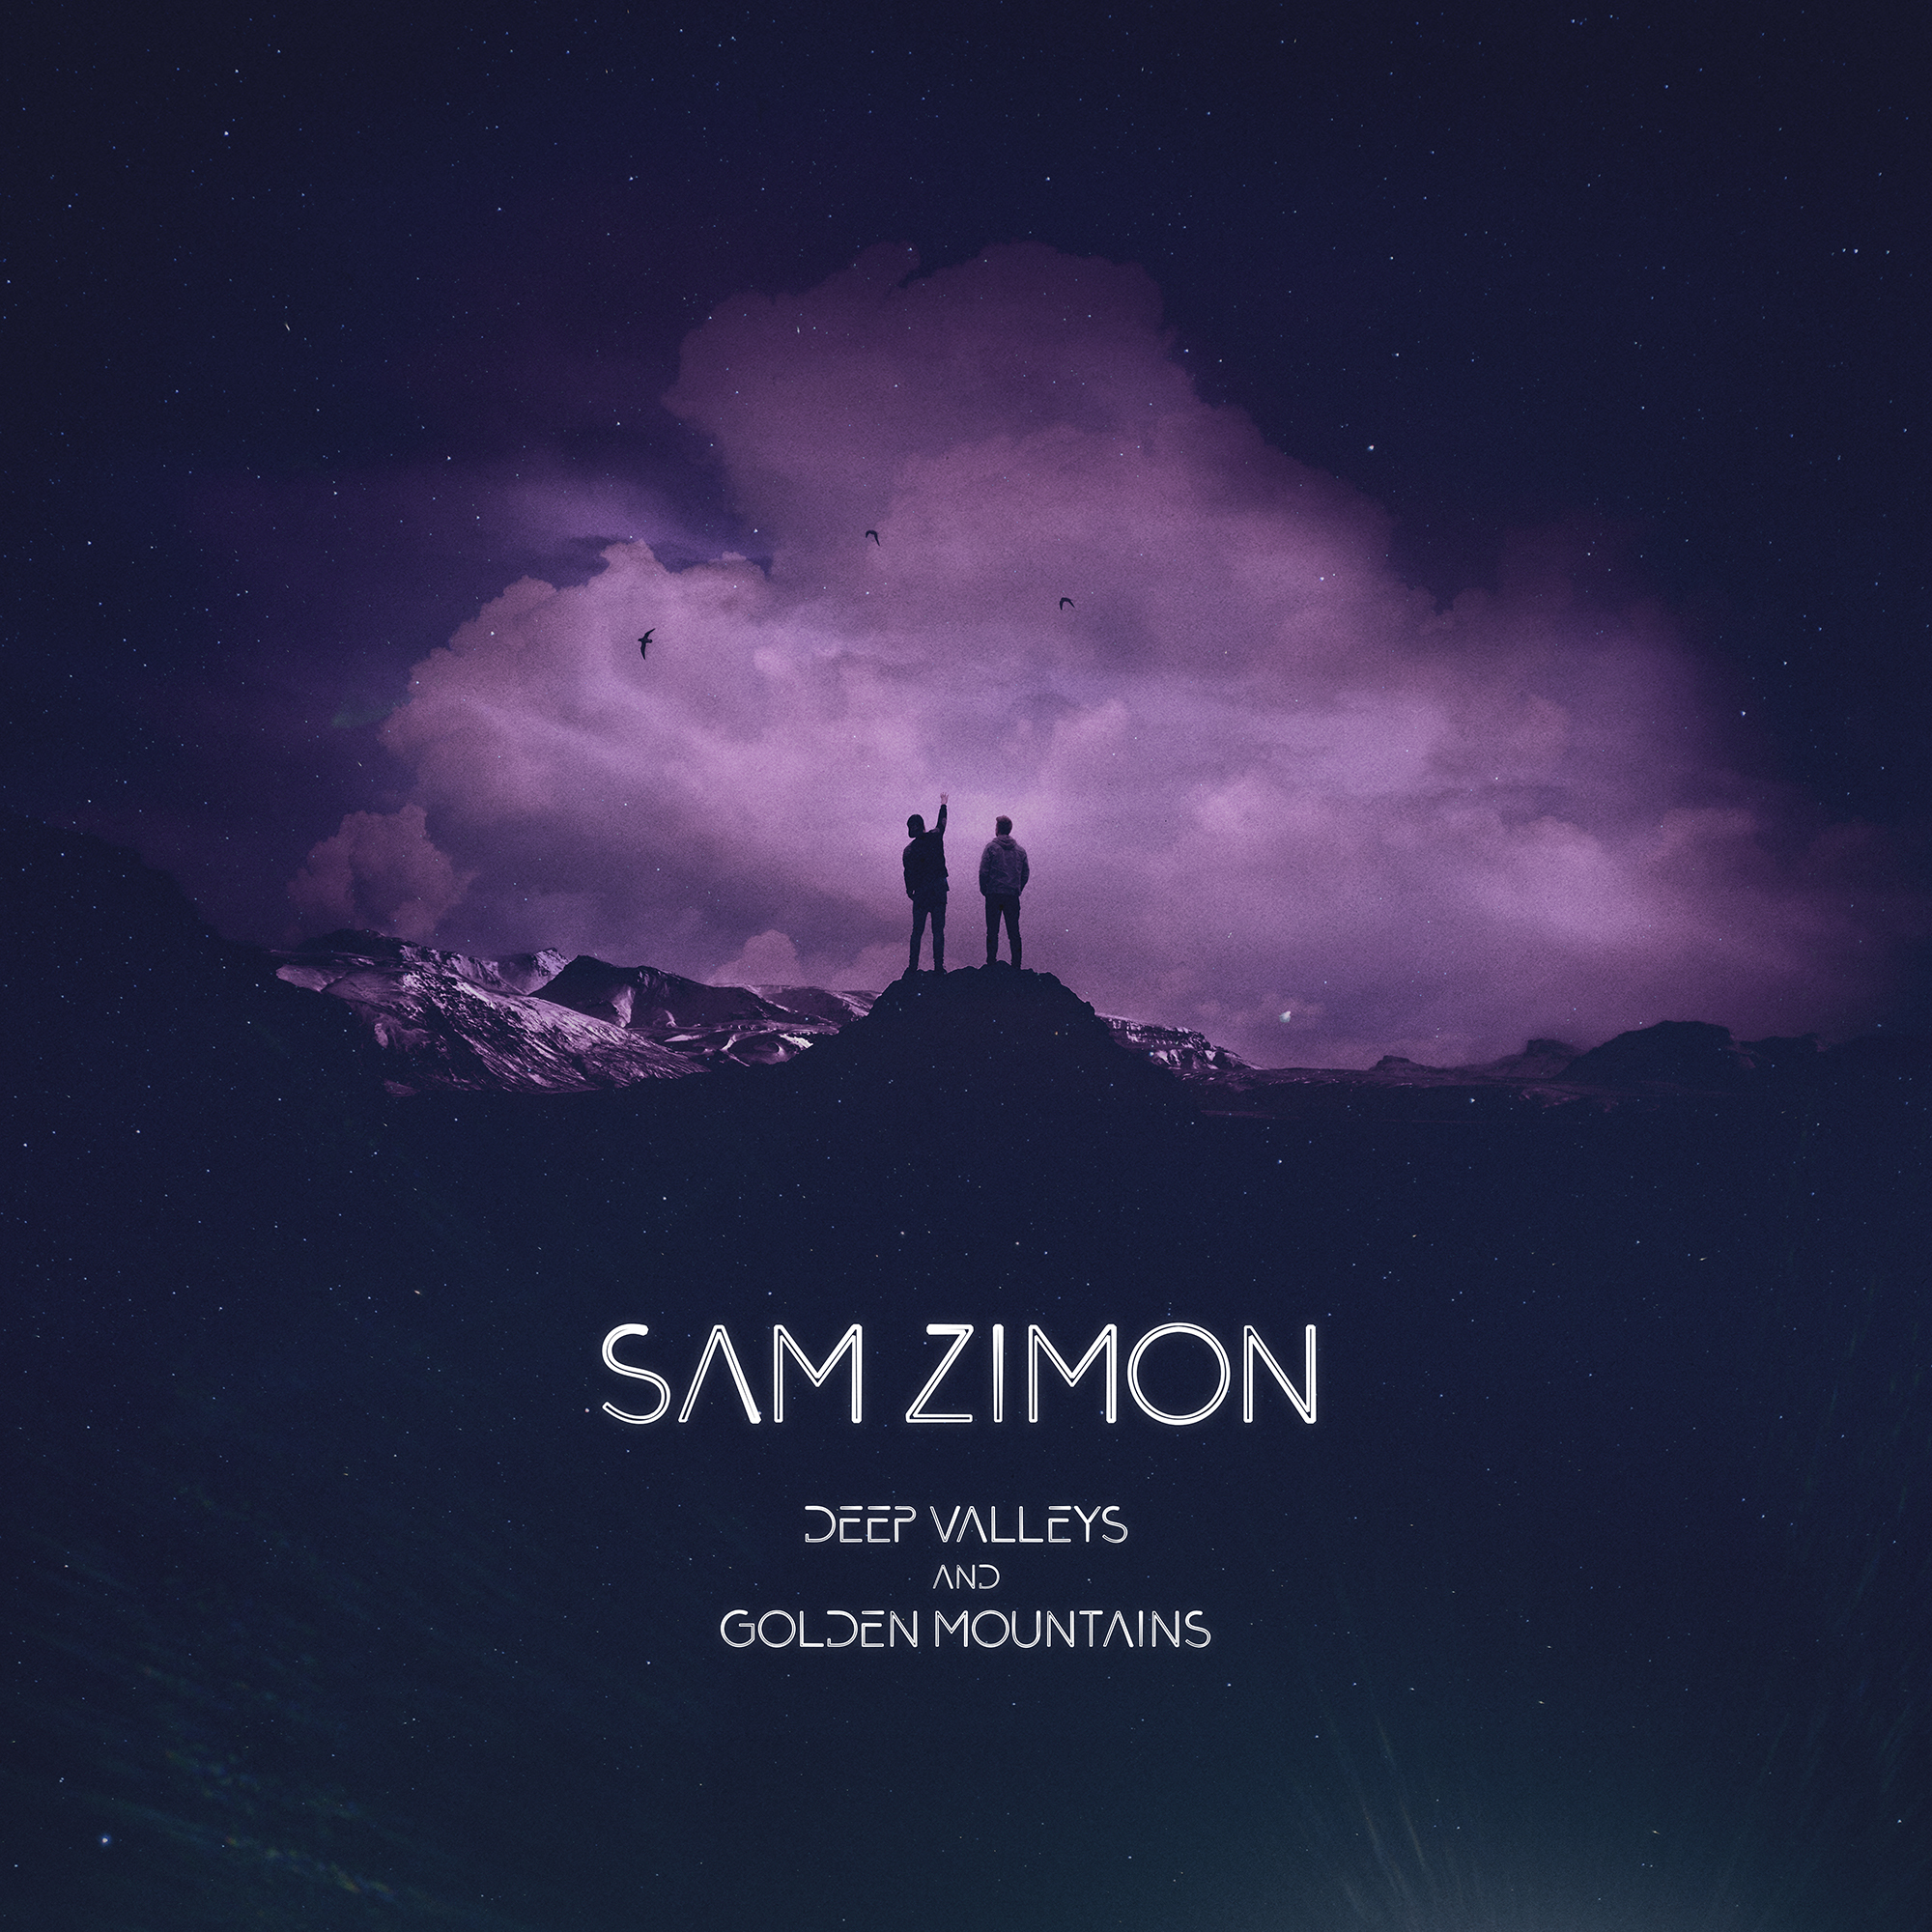 Sam Zimon - album cover - FINAL.jpg